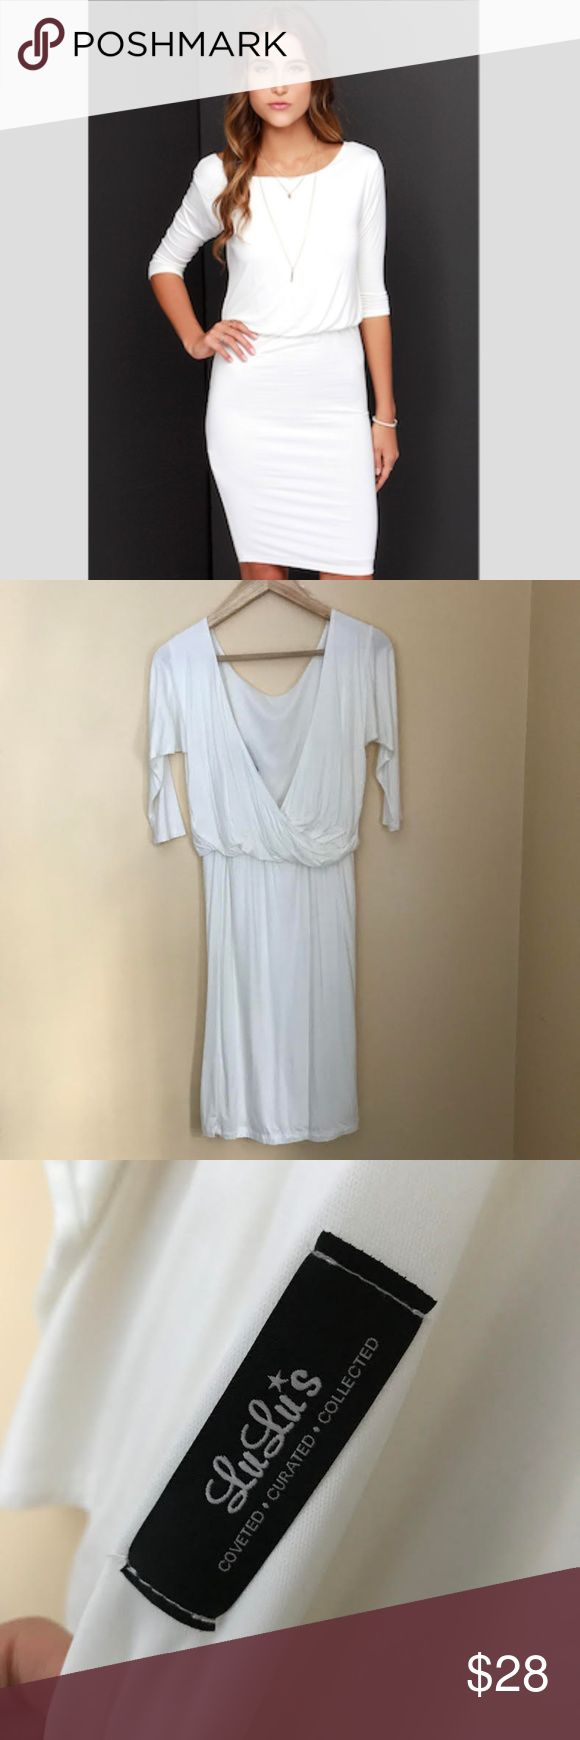 NWT Lulus All or Nothing Ivory Backless Dres Lulus Exclusive All or Nothing Ivory Backless Dress.  NWT Never worn!  Lulus Exclusive! Day or night, and all year long, the All or Nothing Ivory Backless Dress will be your strongest staple! The softest ivory jersey knit lays the foundation for this chic half sleeve dress with a rounded neckline, and billowy bodice that perfectly complements the low, surplice back. From the fitted elasticized waist, a fitted tube skirt drops to end at a…